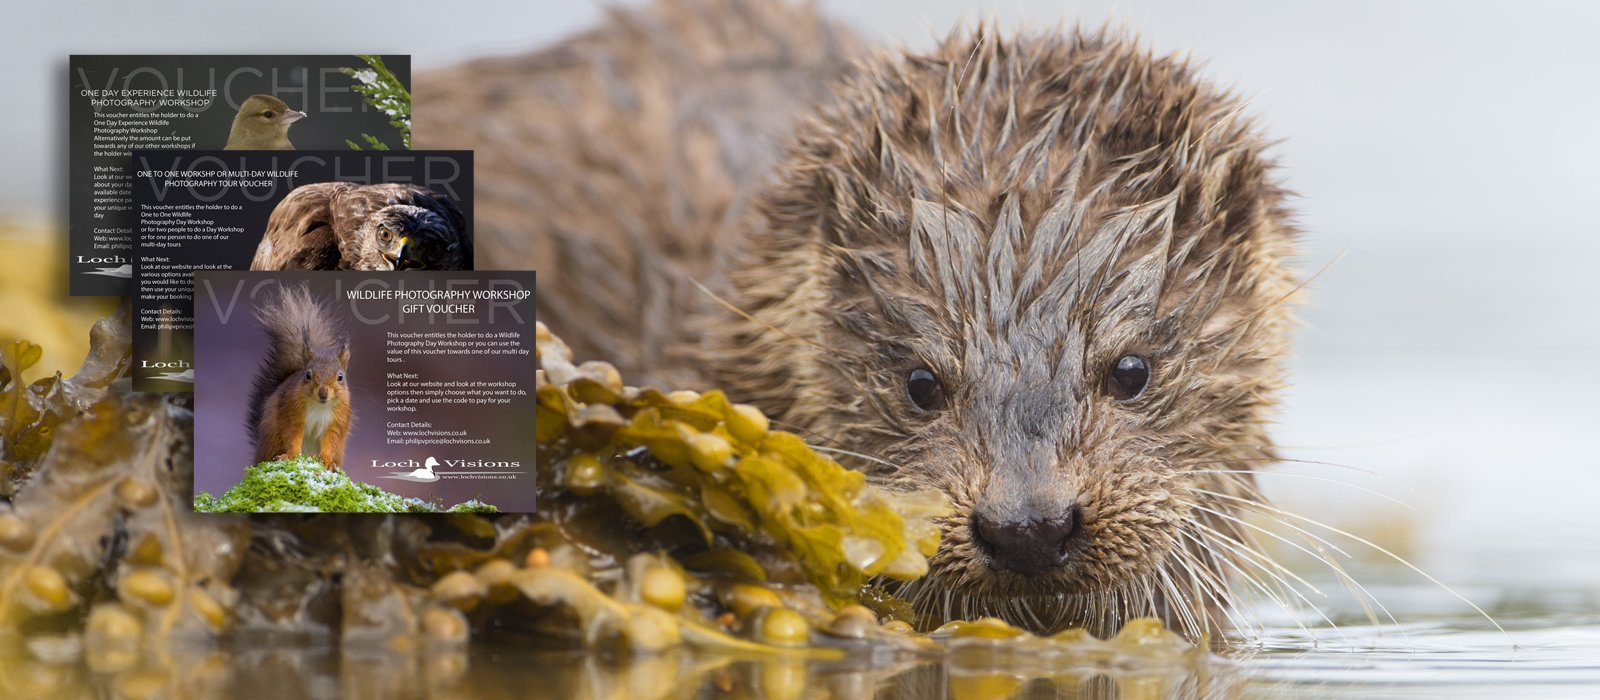 Otter wildlife photography workshop gift voucher